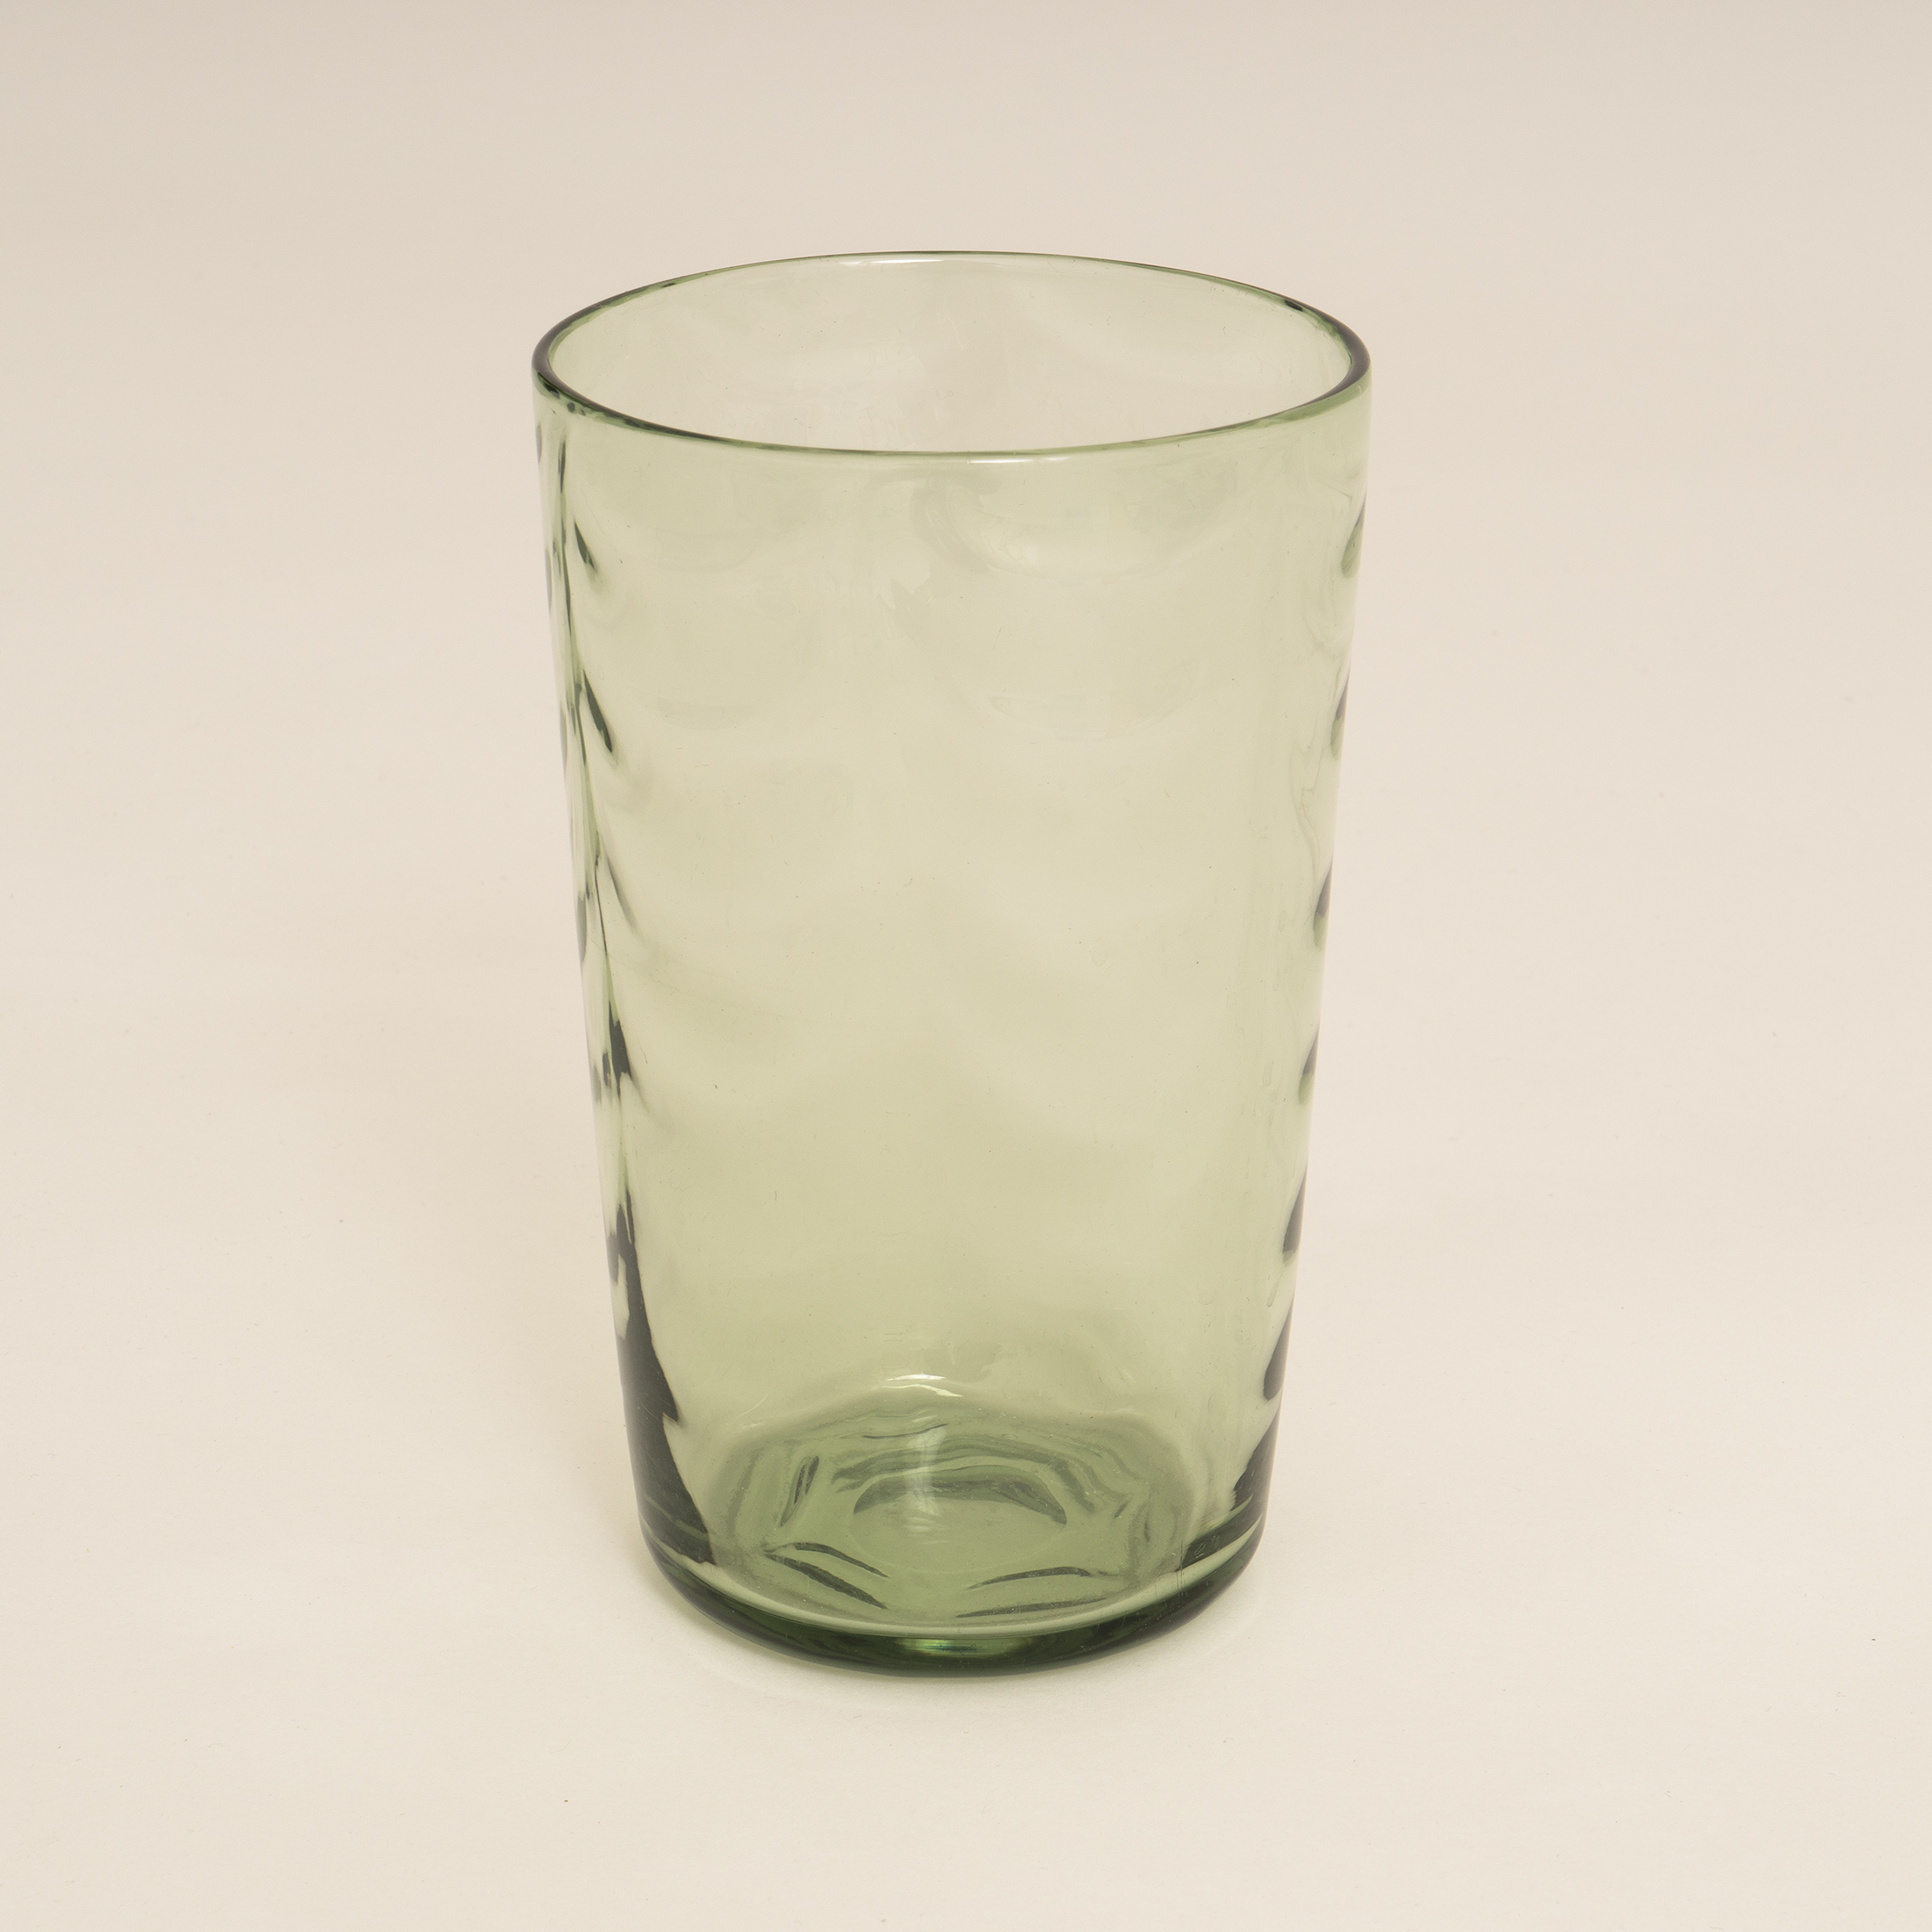 The image for Glass Vase 4 1278